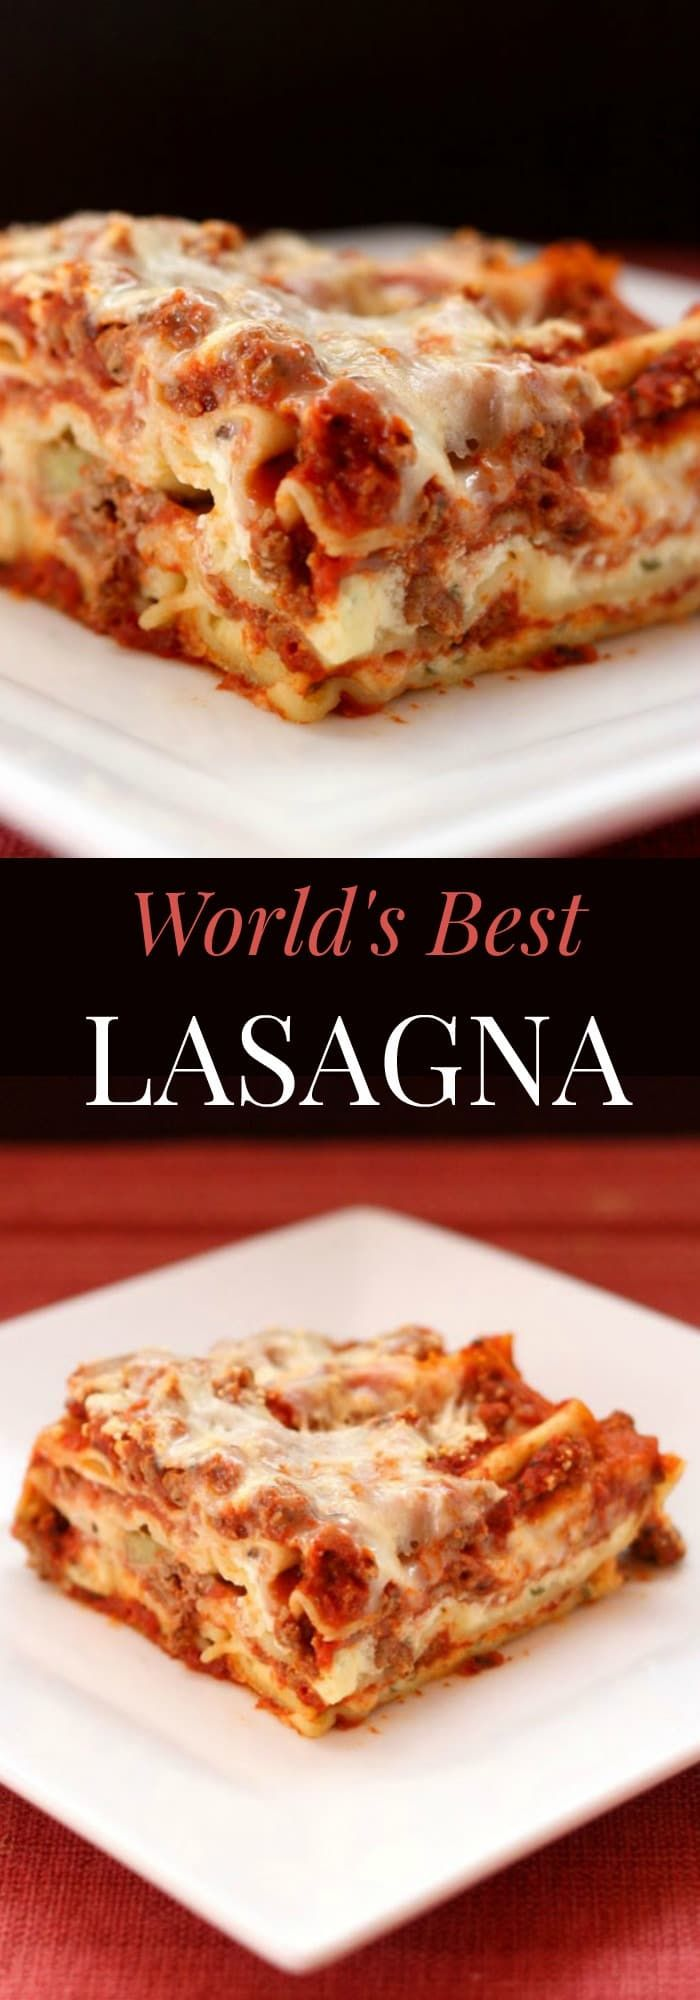 World's Best Lasagna - the ultimate recipe for classic Italian comfort food with layers of pasta, meat sauce, and cheese. #lasagna #worldsbestlasagna #pasta